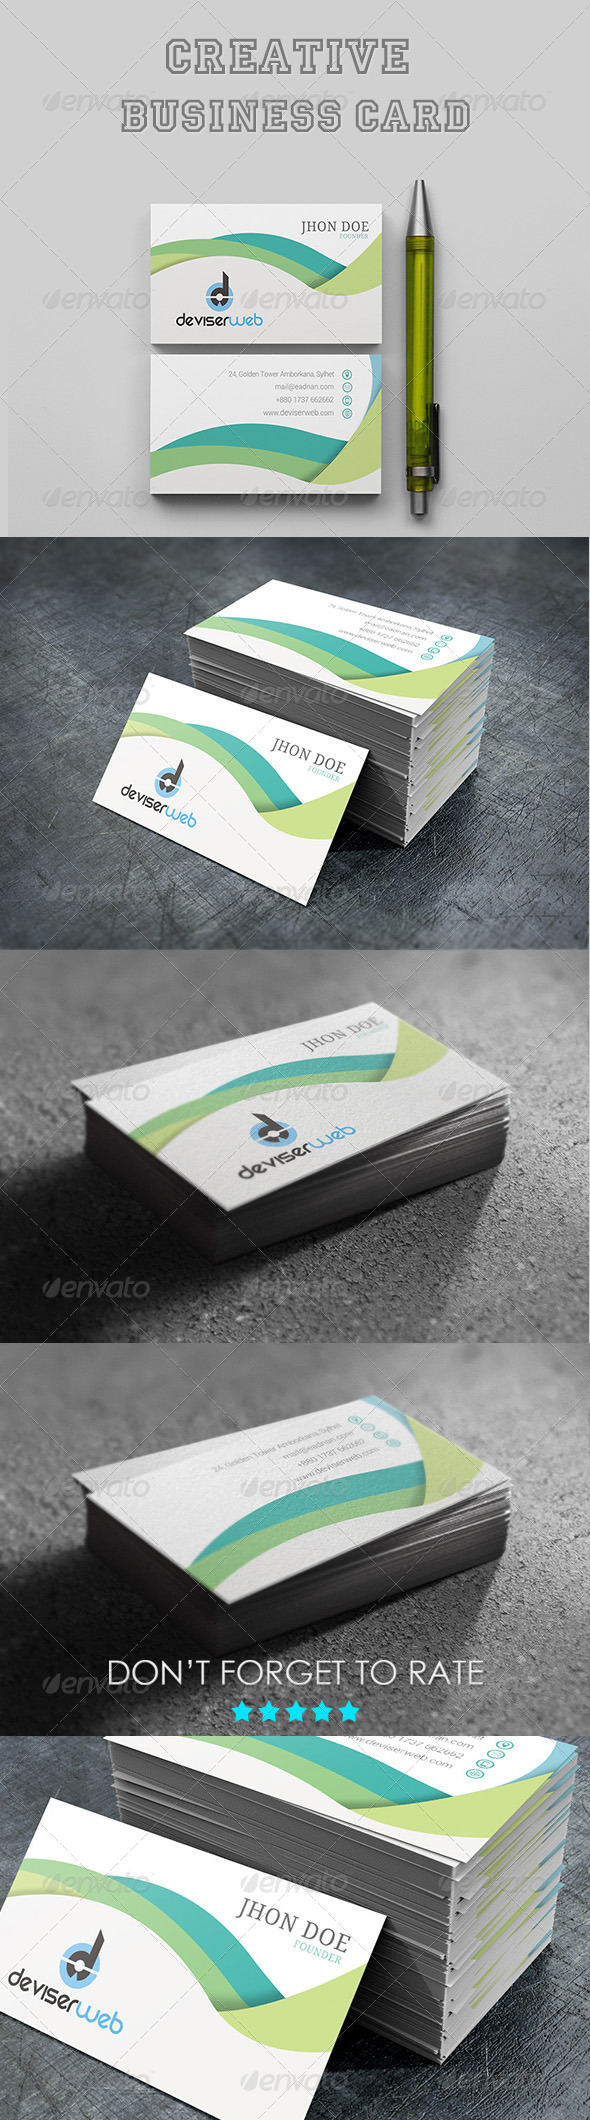 GraphicRiver Creative Business Card 7066342